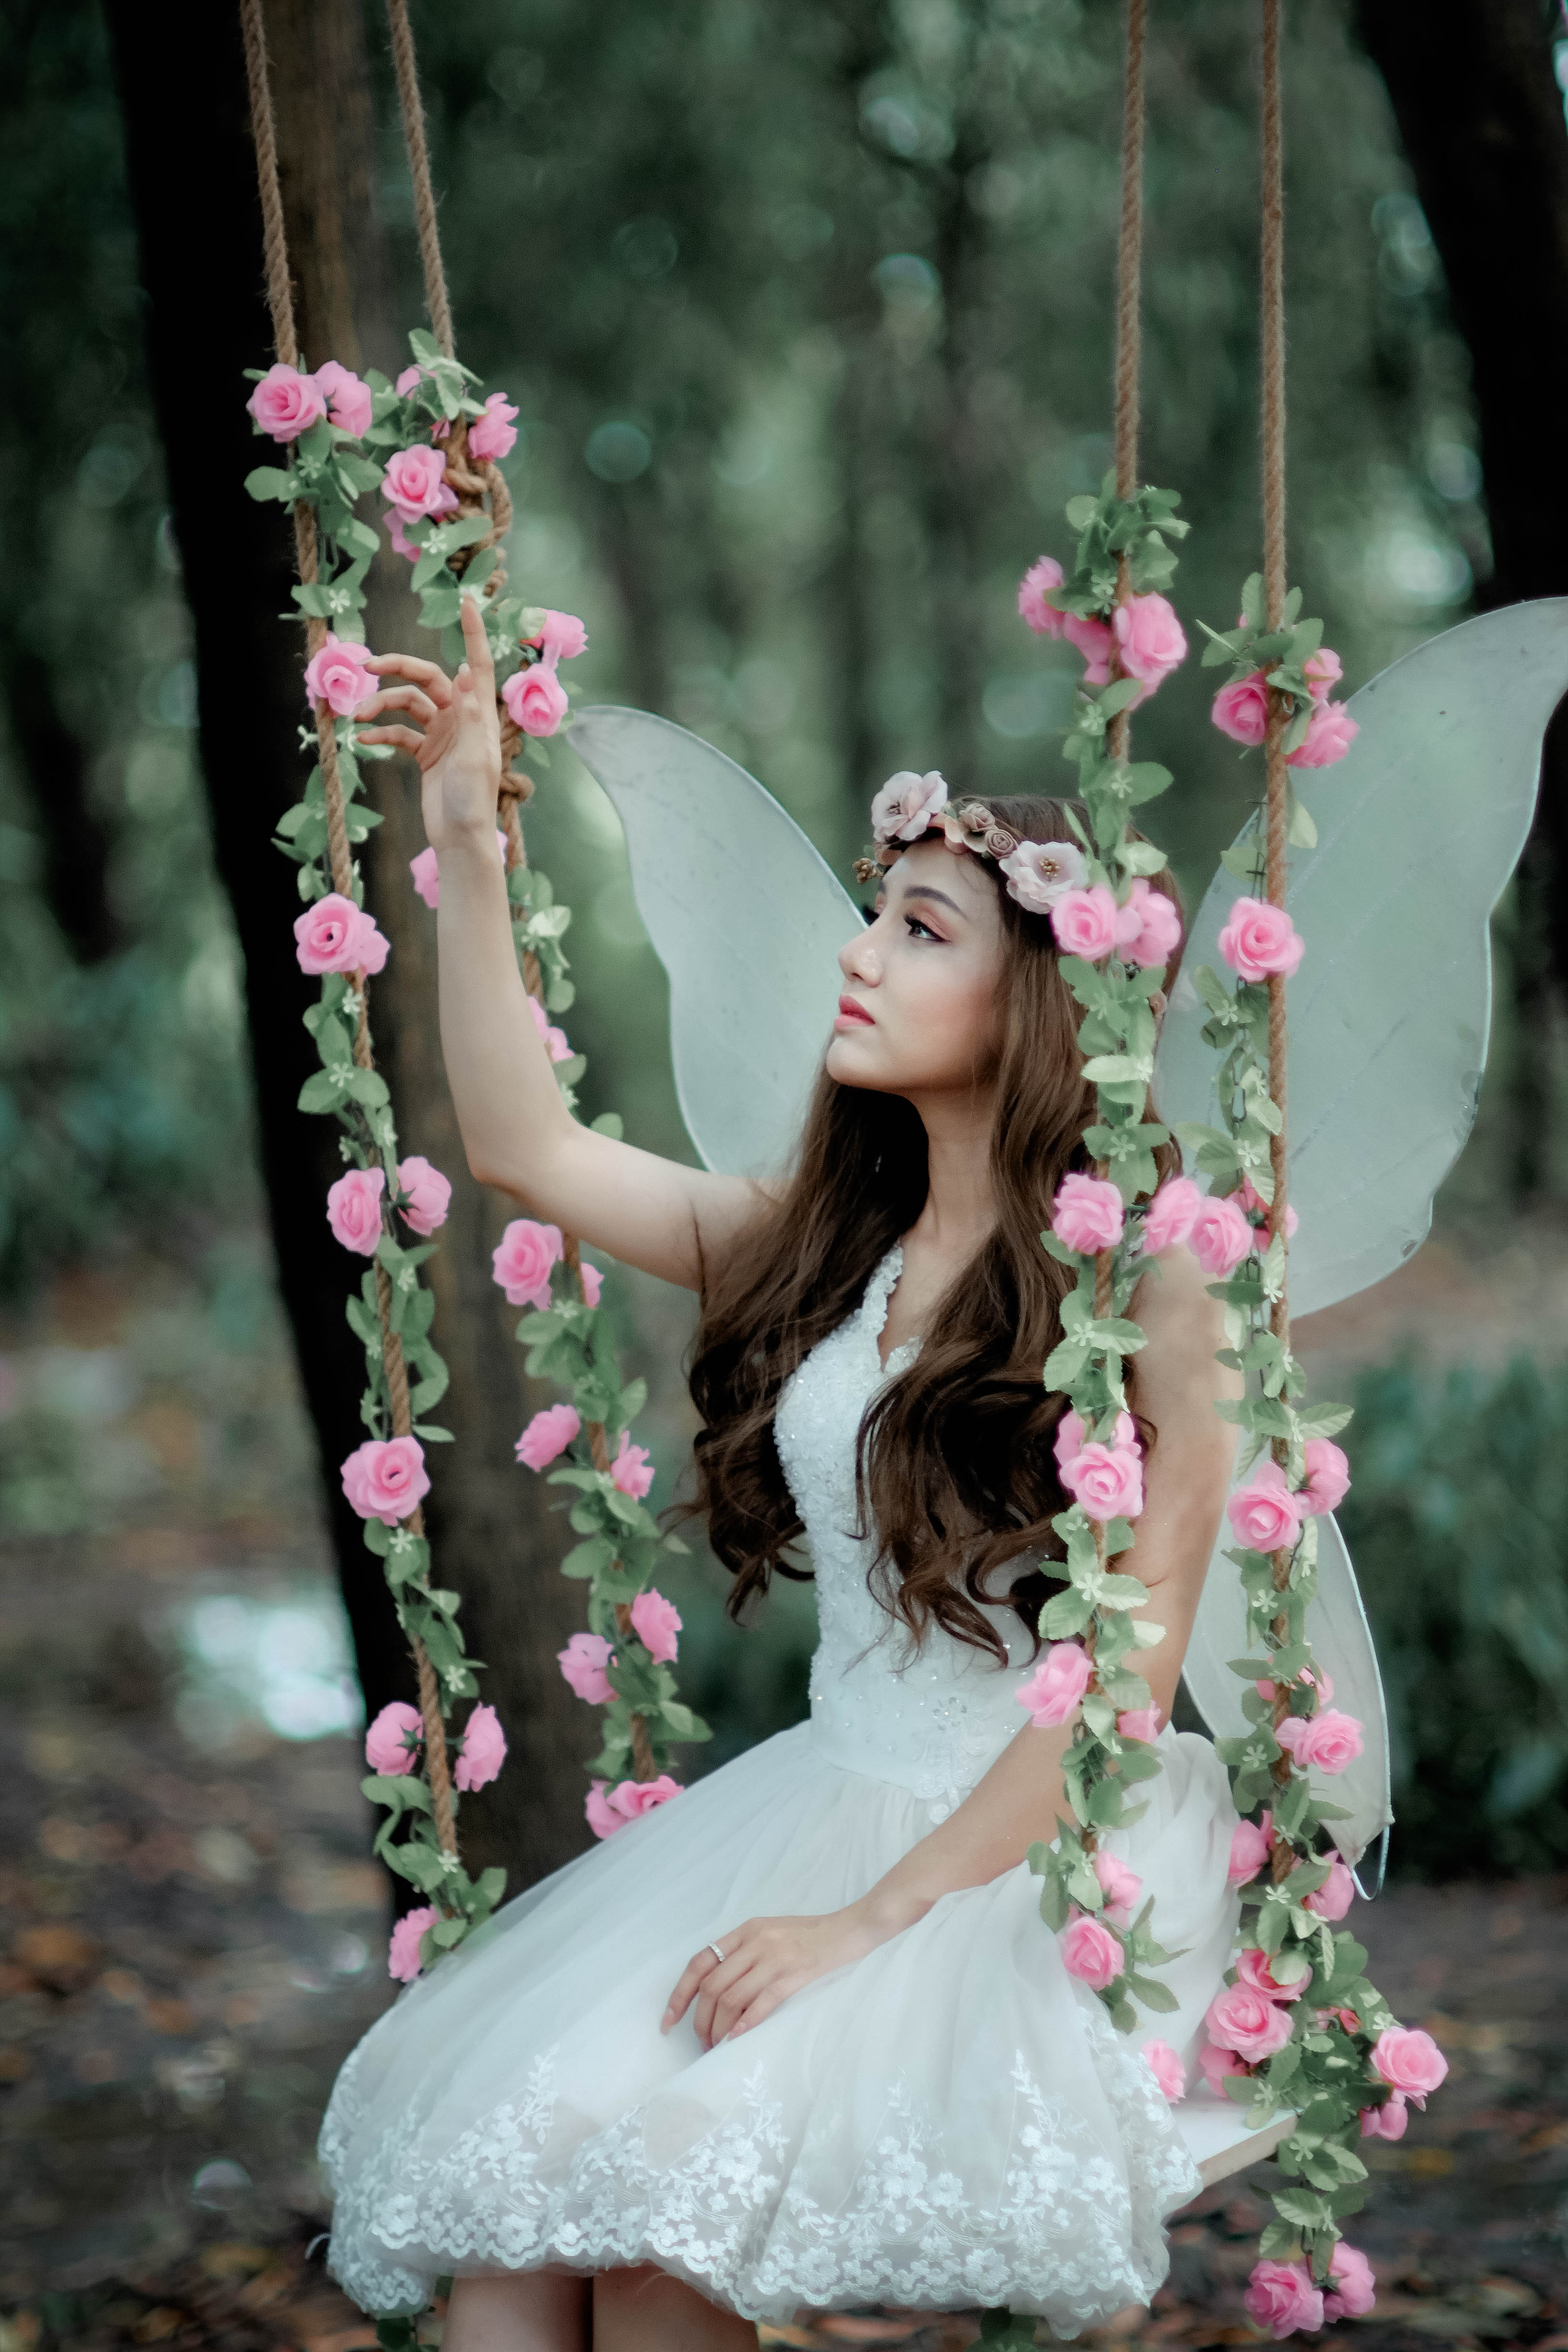 Cute Angel Wallpaper For Mobile 1000 Amazing Wings Photos 183 Pexels 183 Free Stock Photos